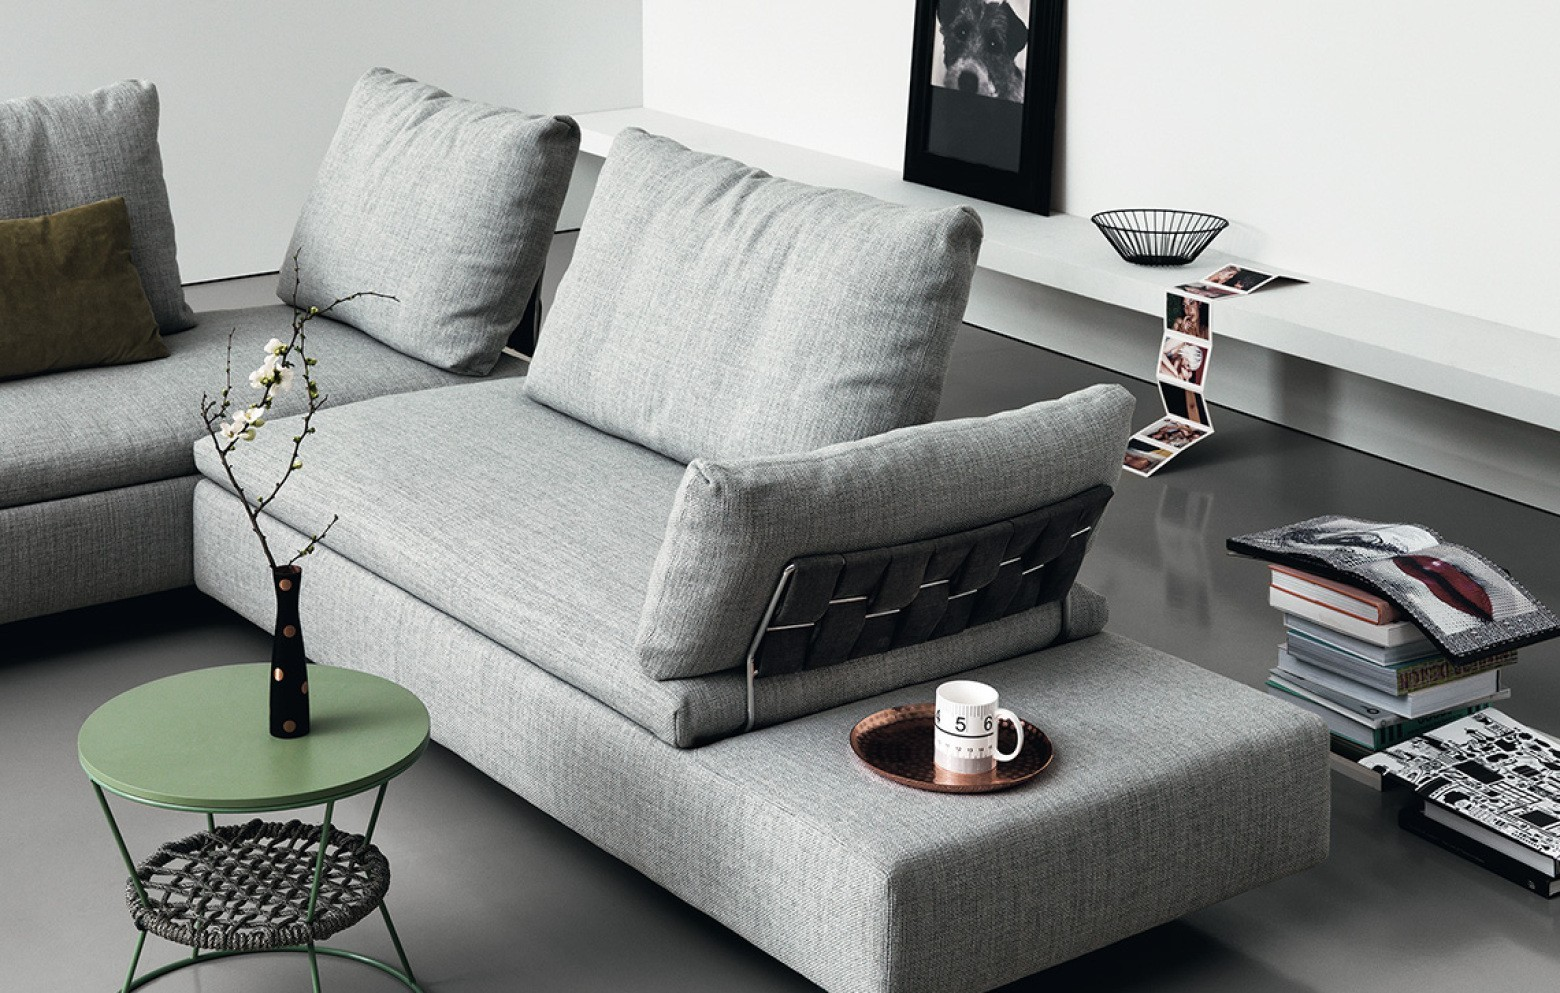 limes sofas online outlet who 39 s perfect. Black Bedroom Furniture Sets. Home Design Ideas